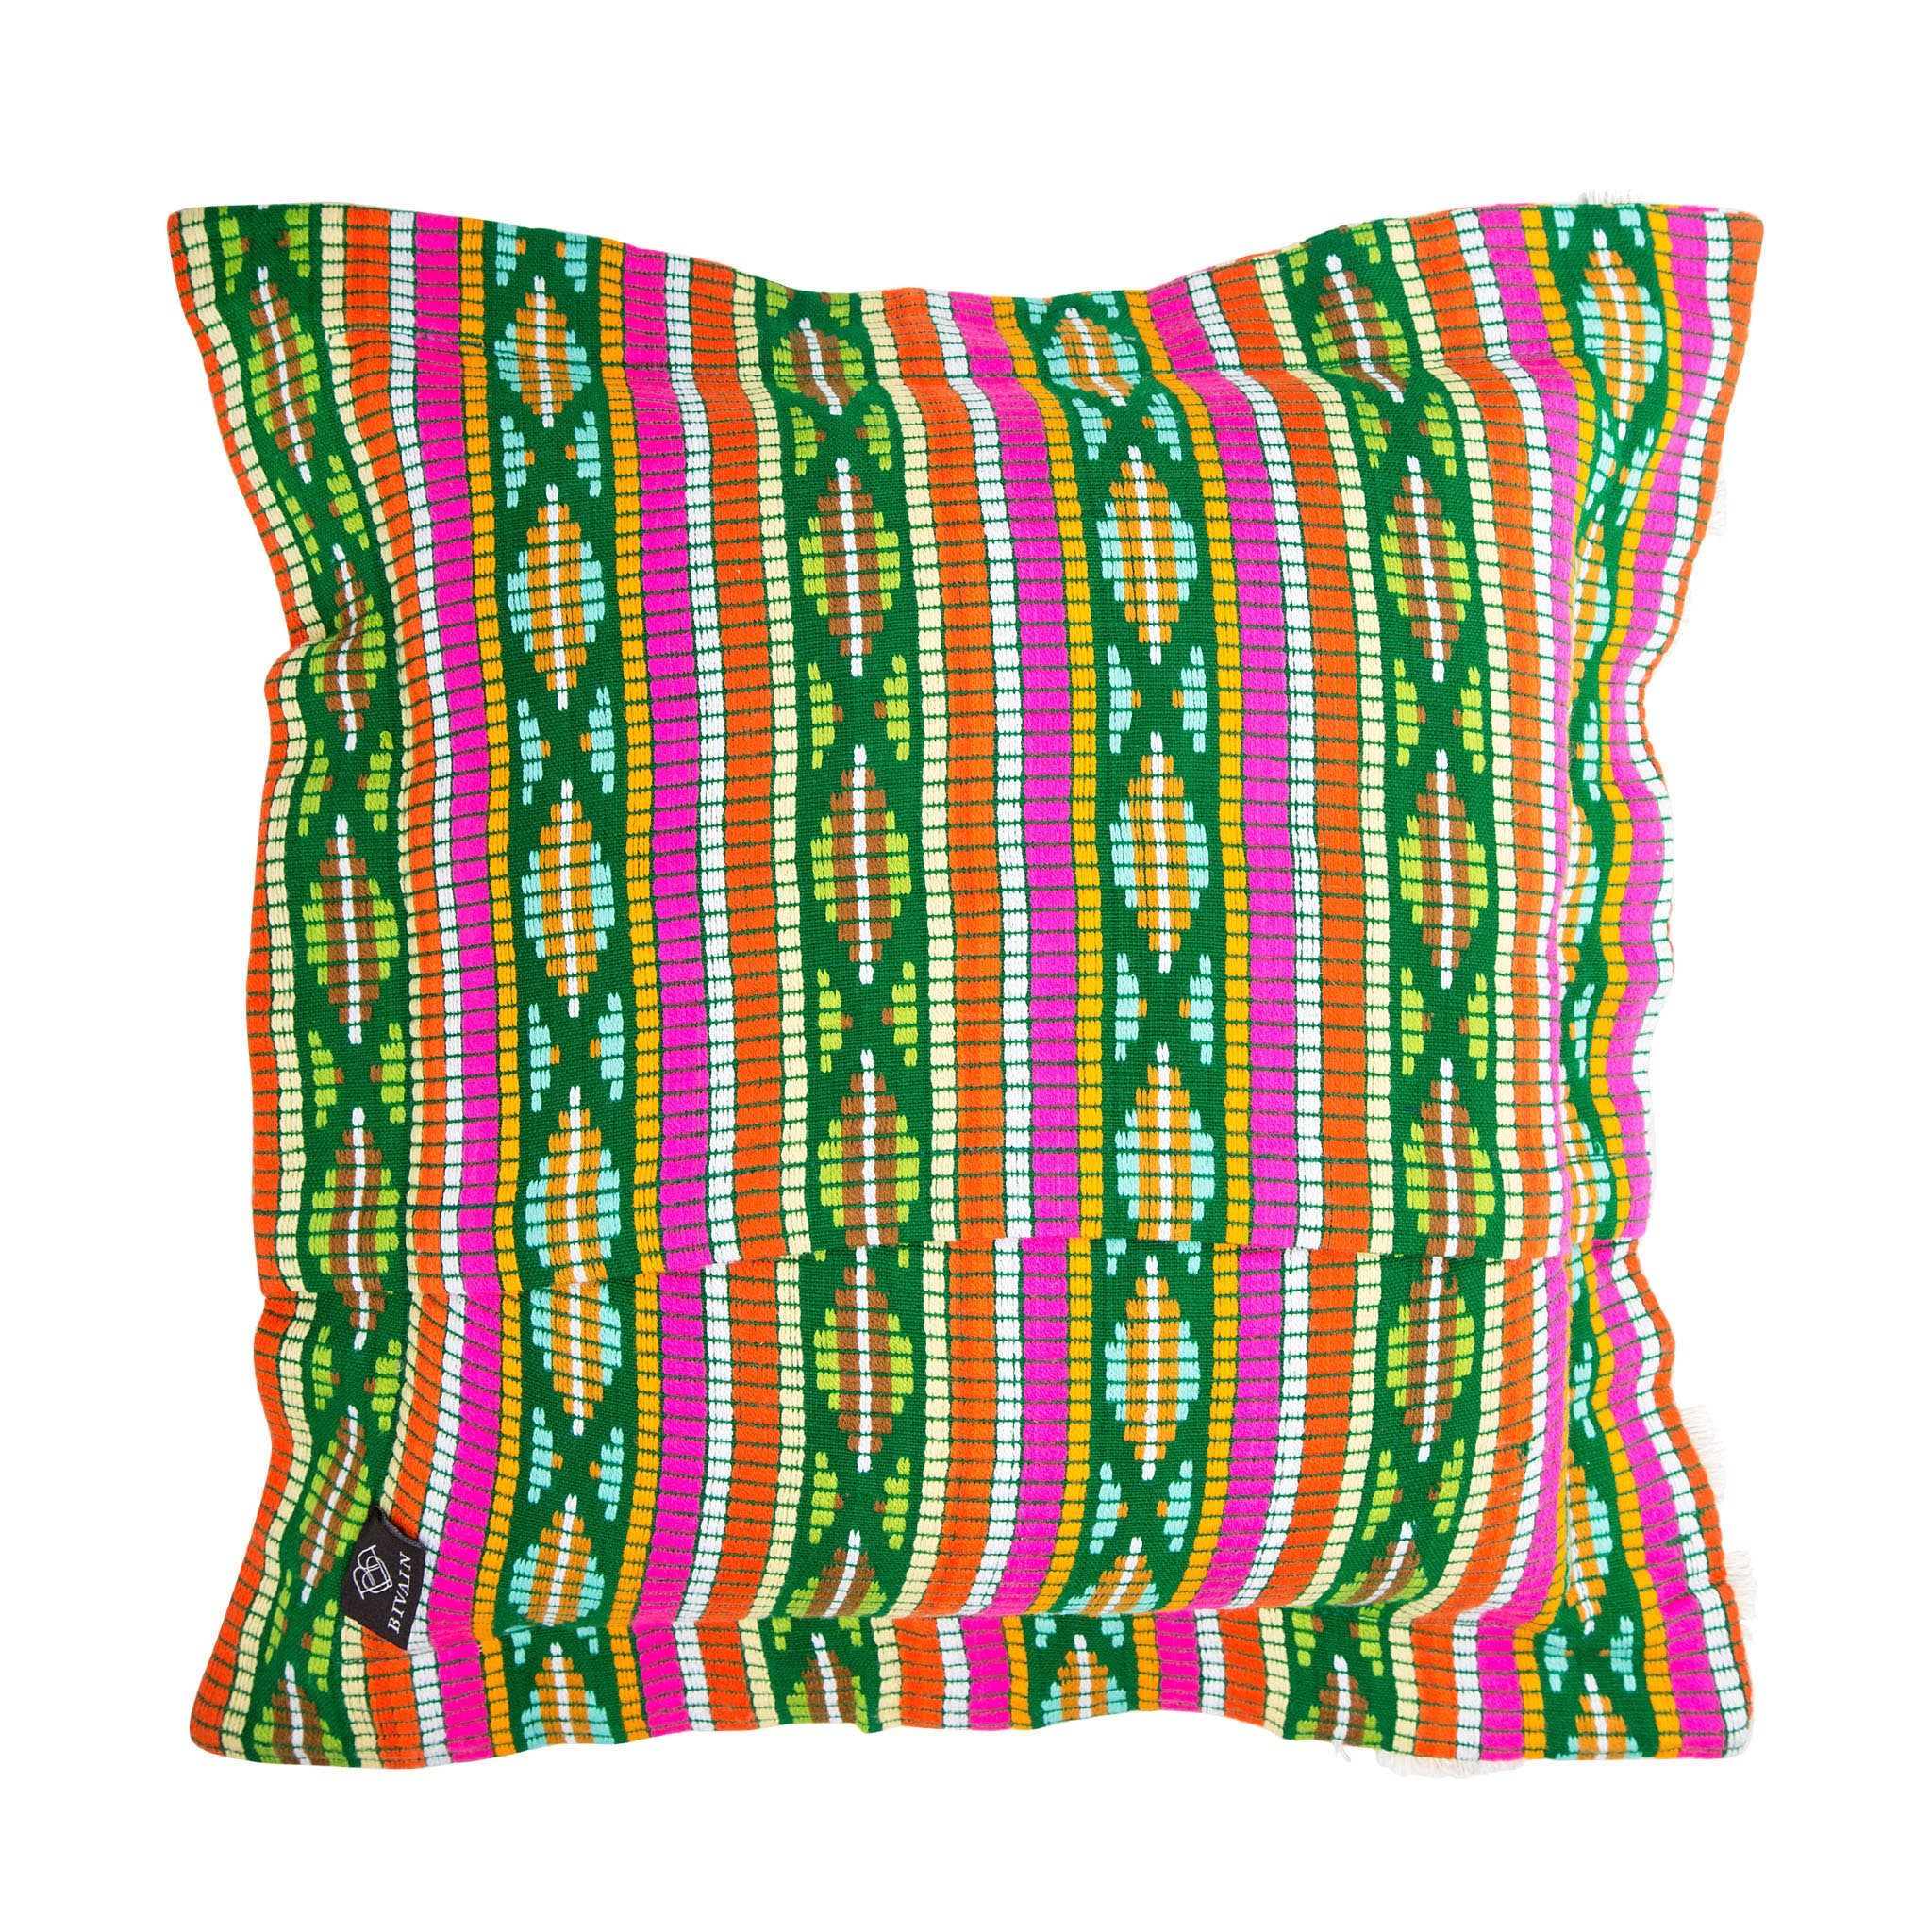 Bedouin-style green cotton tasselled cushion - Bivain - 3